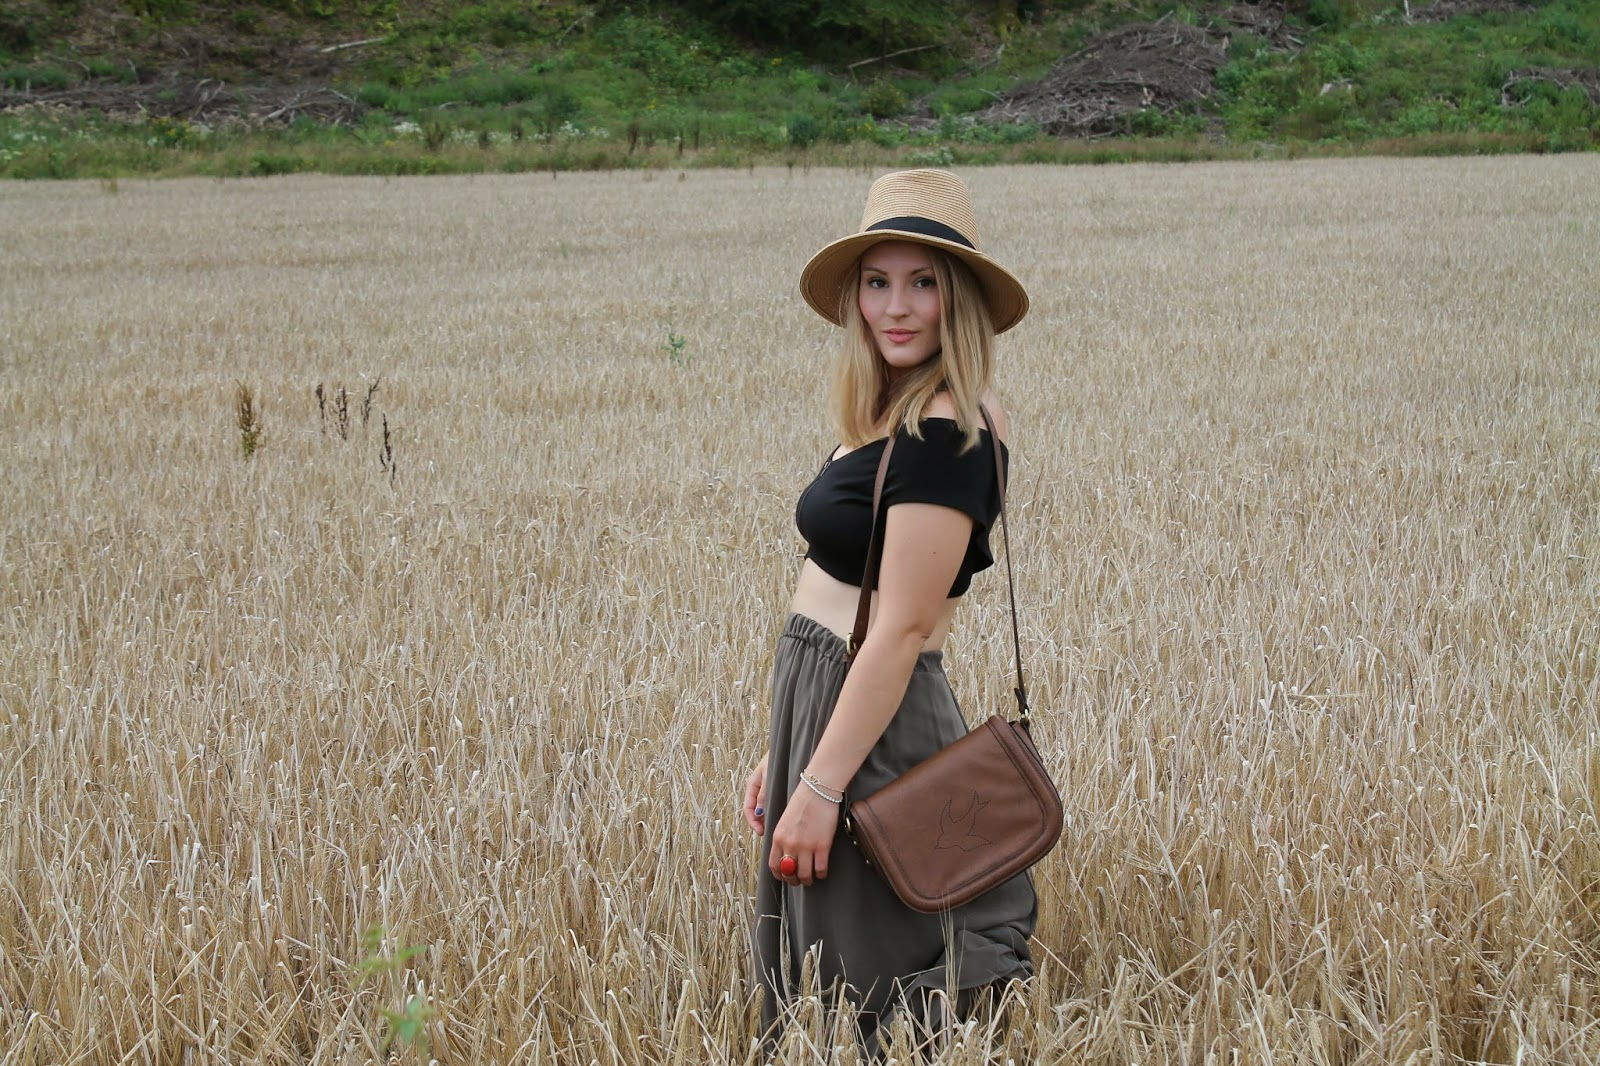 Fashionblogger Austria / Österreich / Deutsch / German / Kärnten / Carinthia / Klagenfurt / Köttmannsdorf / Spring Look / Classy / Edgy / Summer / Summer Style 2014 / Summer Look / Fashionista Look /   / Summer Dress / Pattern / Oasap Dress / Evening Look / cocktail Dress / Strappy heels / Nude Heels / How to style Strappy Heels / Violet Clutch / Statement Necklace / How to elongate your legs/